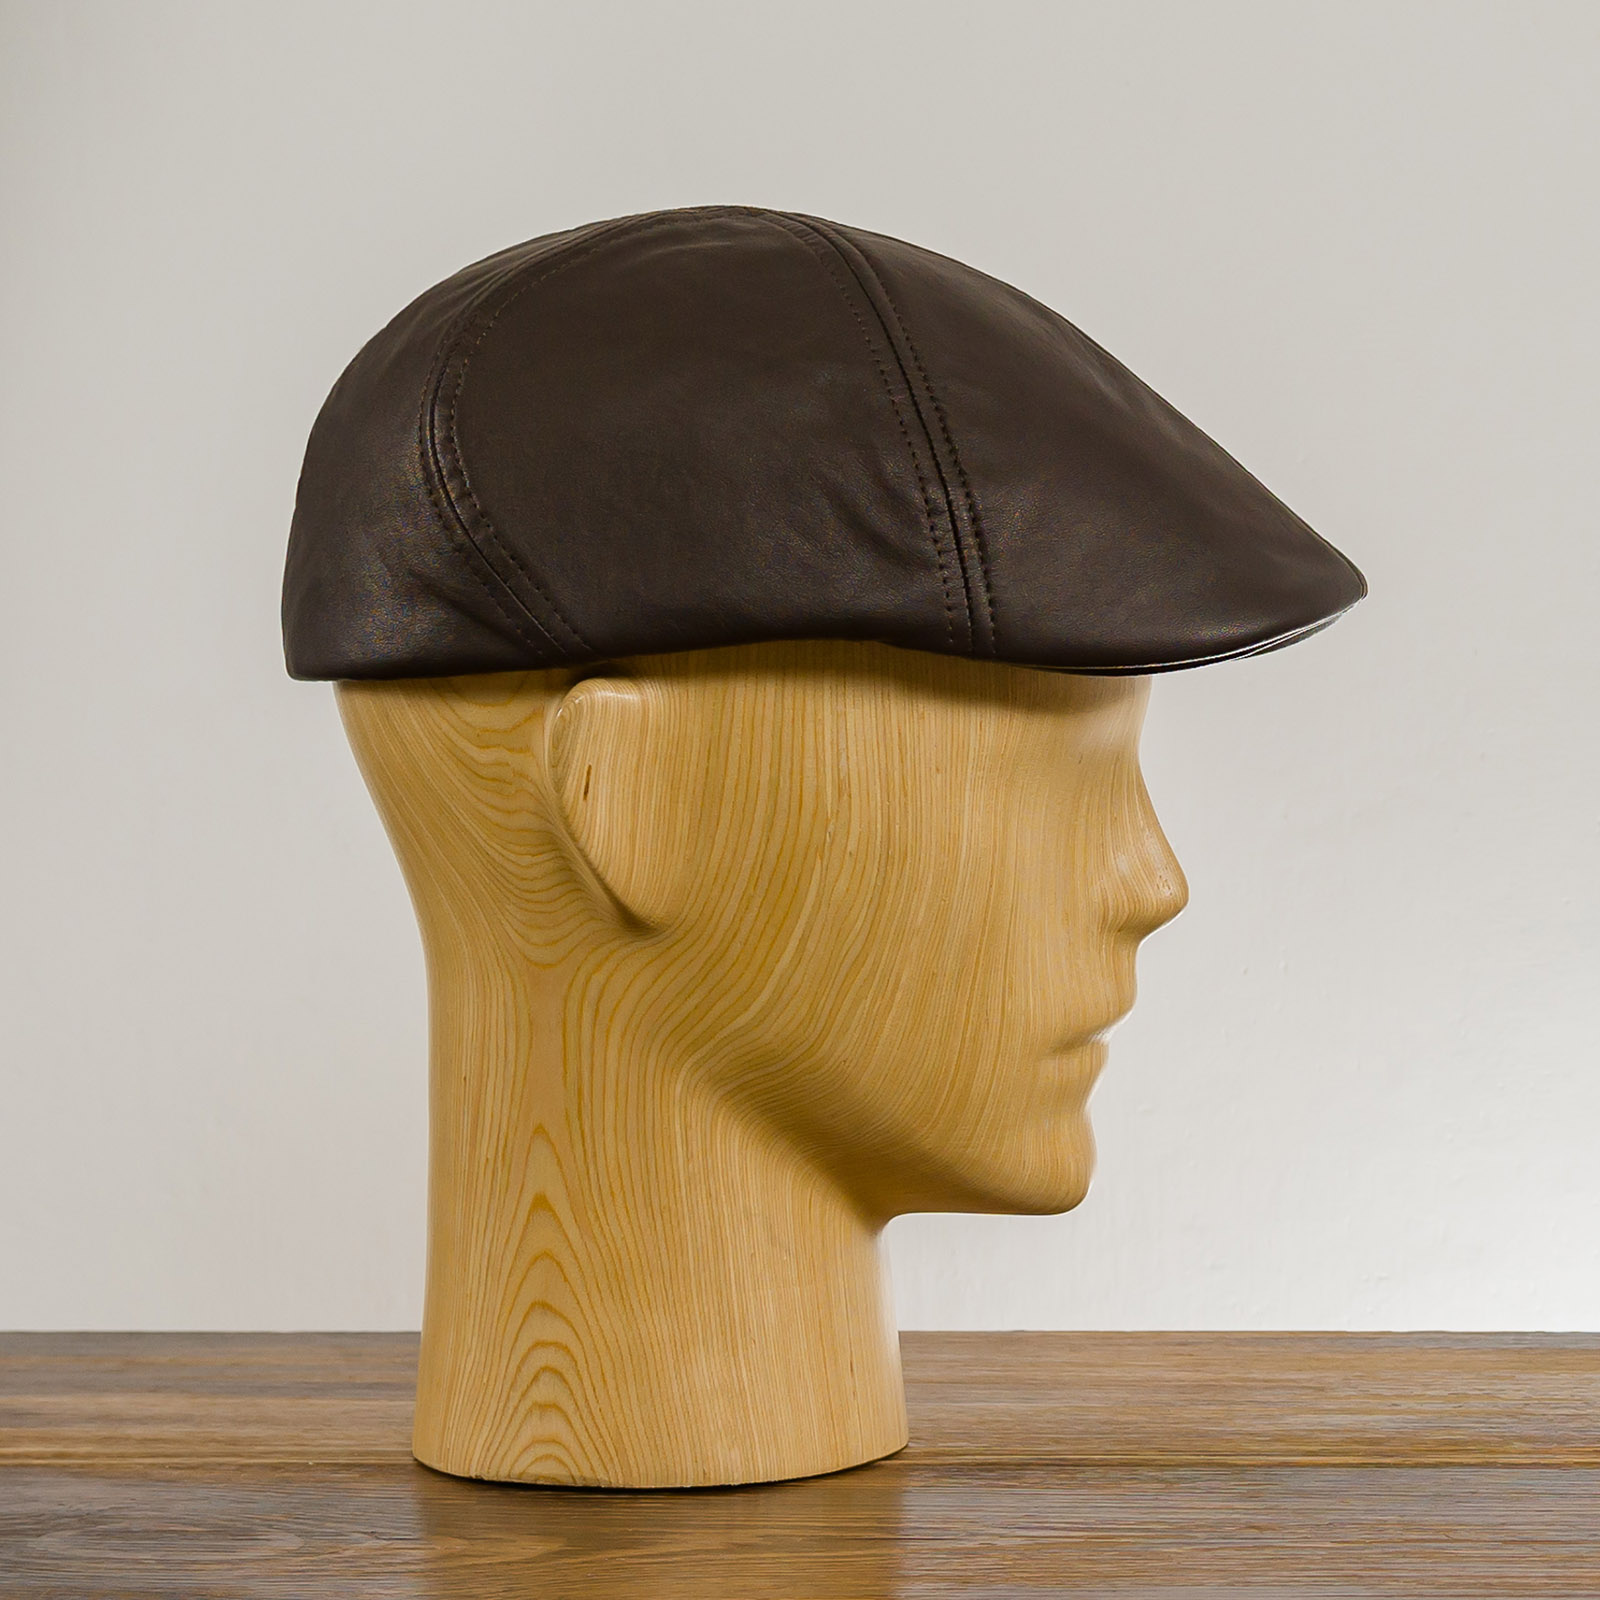 Genuine Leather 6 panel duckbill mens ivy league cap